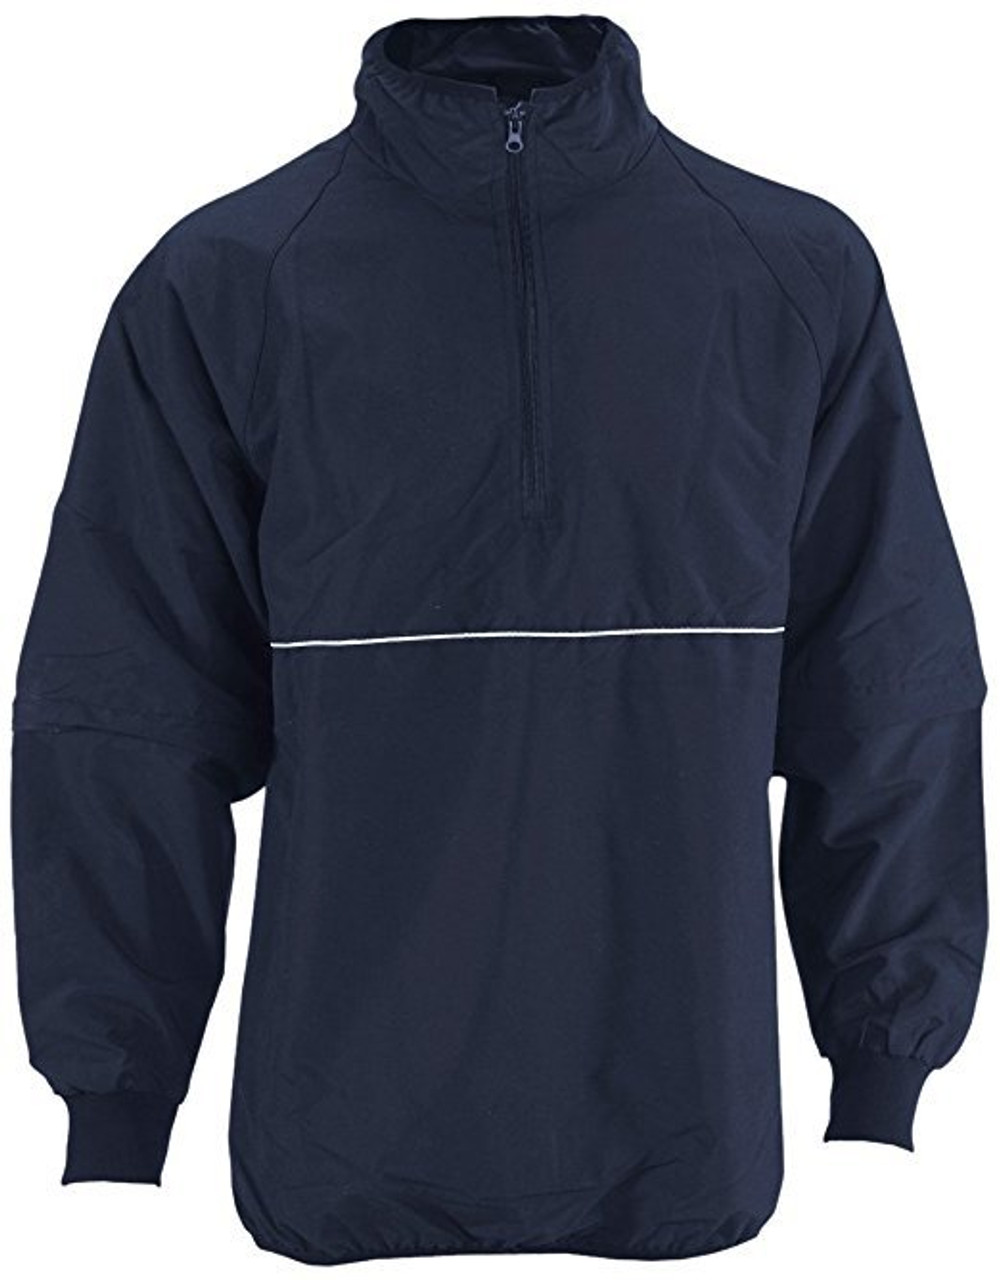 Smitty Navy with Red/White Trim Pro-Series Convertible Umpire Jacket